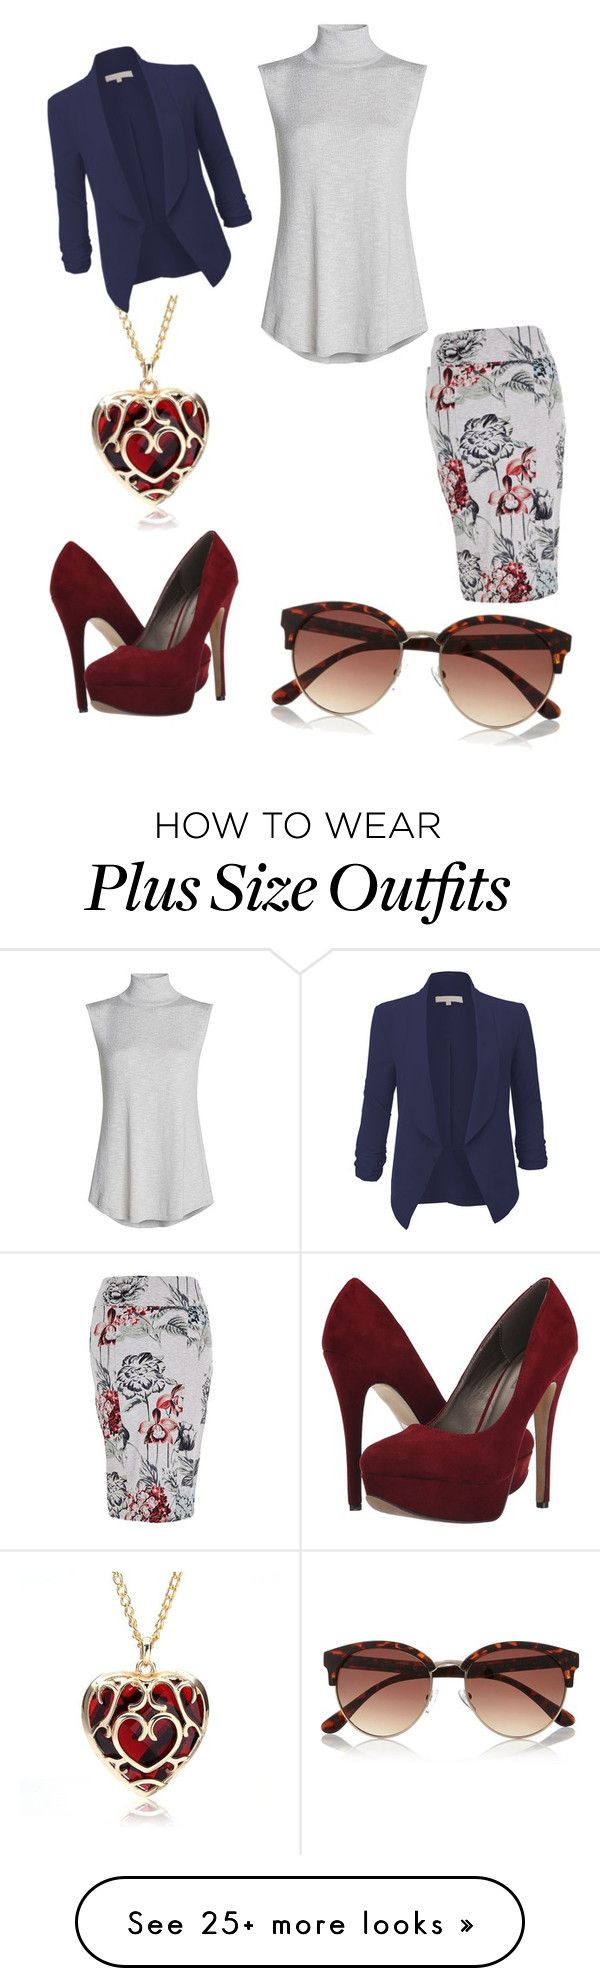 """off to work- plus size"" by maddocksmj on Polyvore featuring Melissa McCarthy Seven7, NIC+ZOE, River Island, Michael Antonio, LE3NO and plus size clothing"